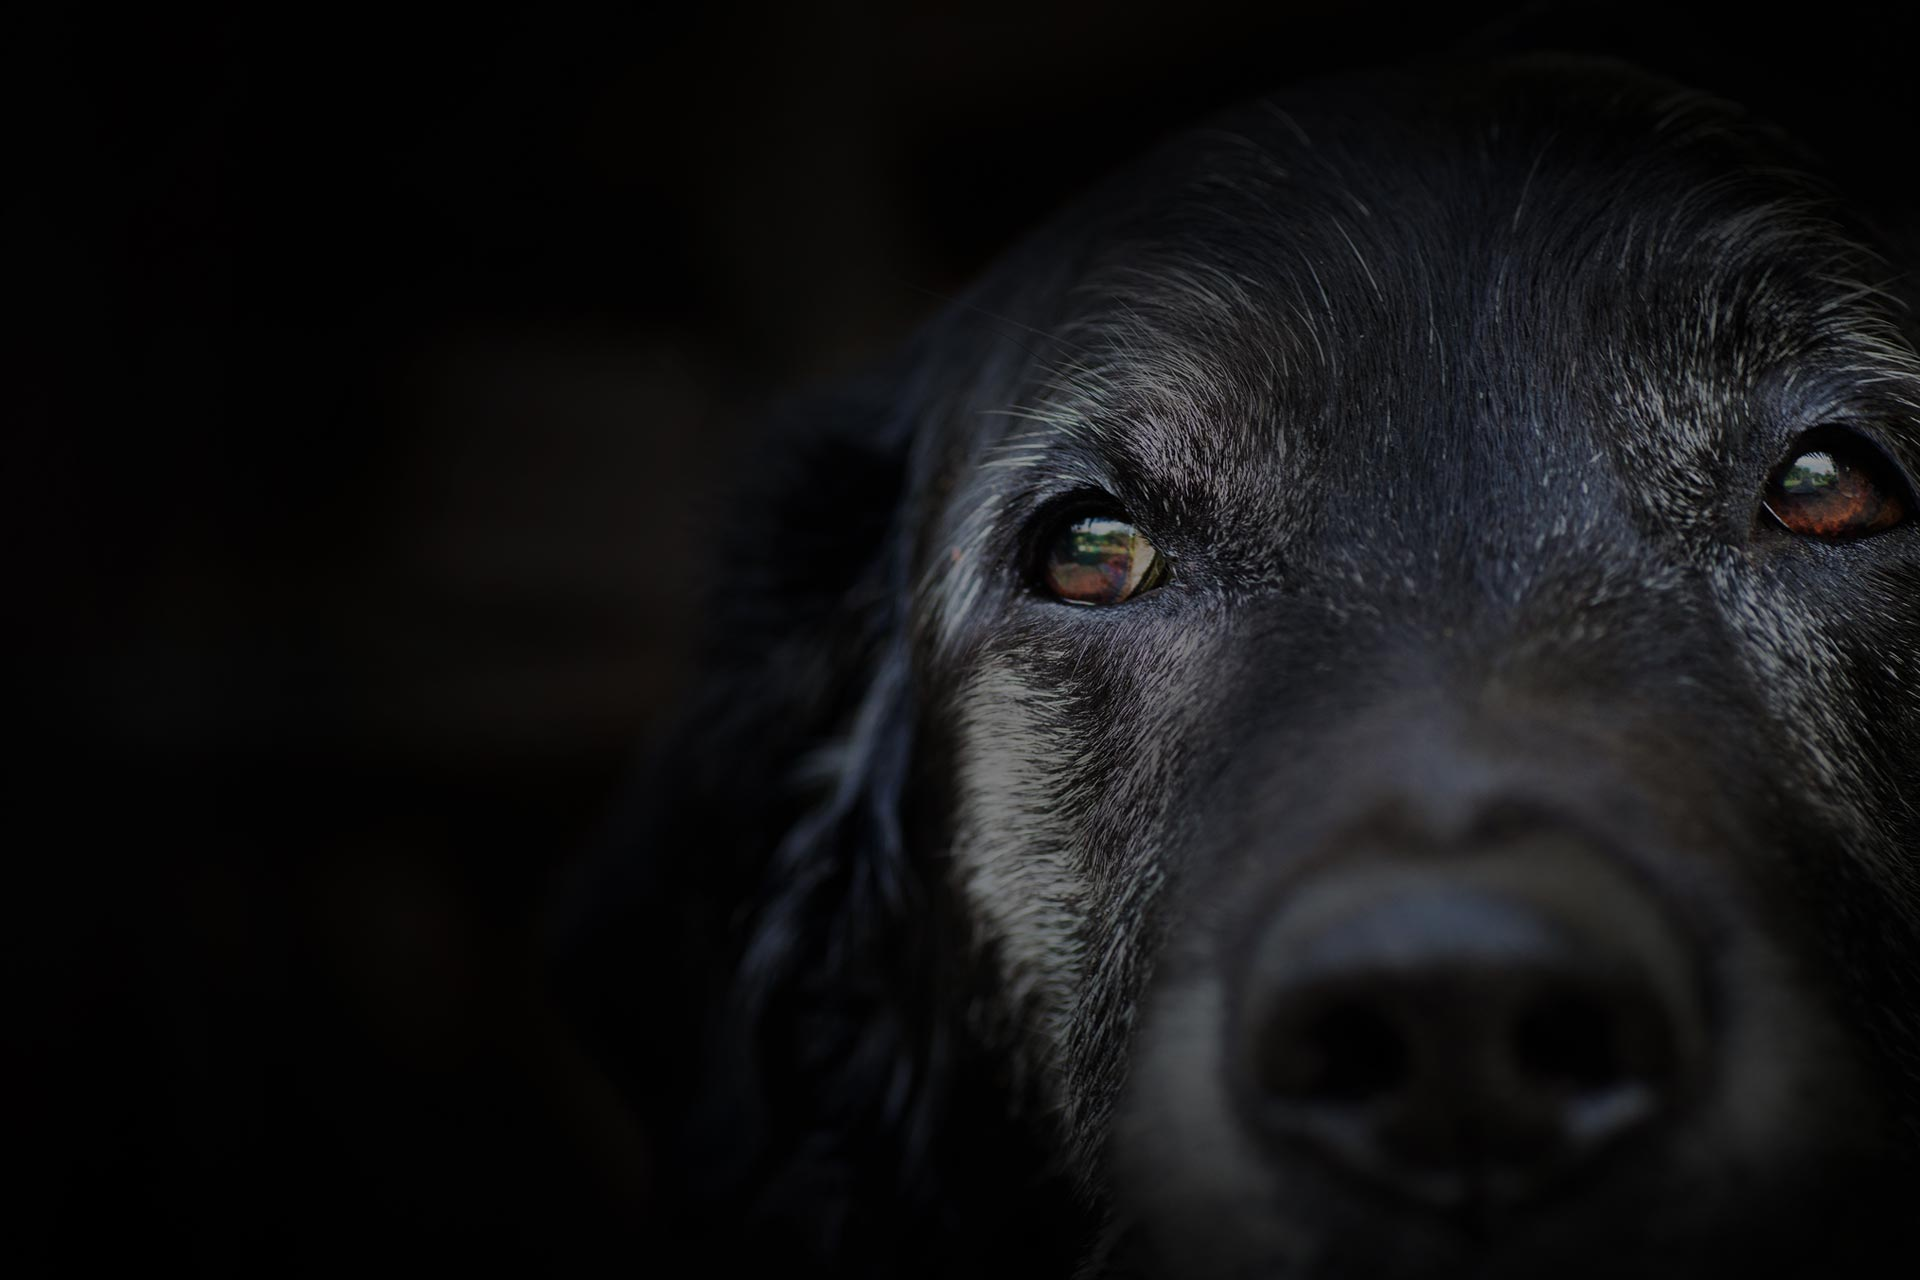 Animal - Old dog. labrador retriever macro shot.